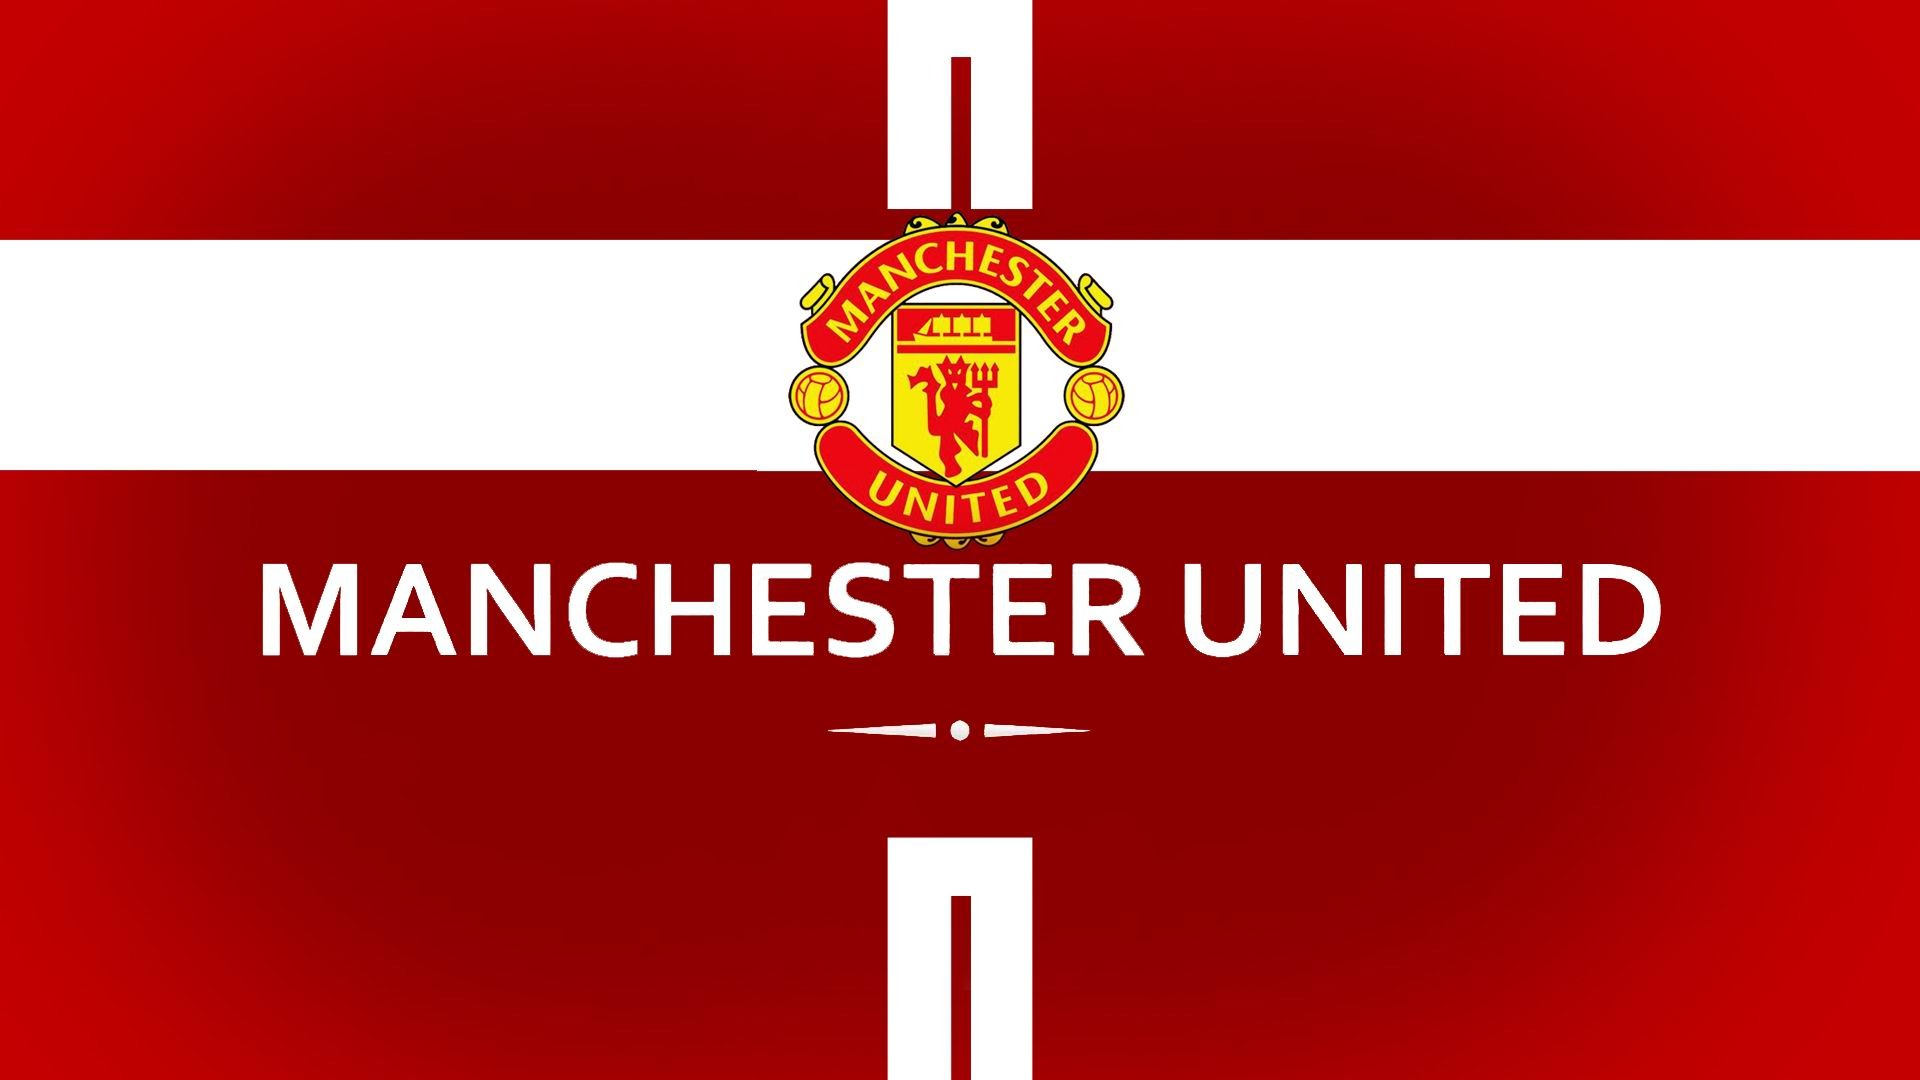 Manchester United Wallpapers for Twitter | Full HD Pictures